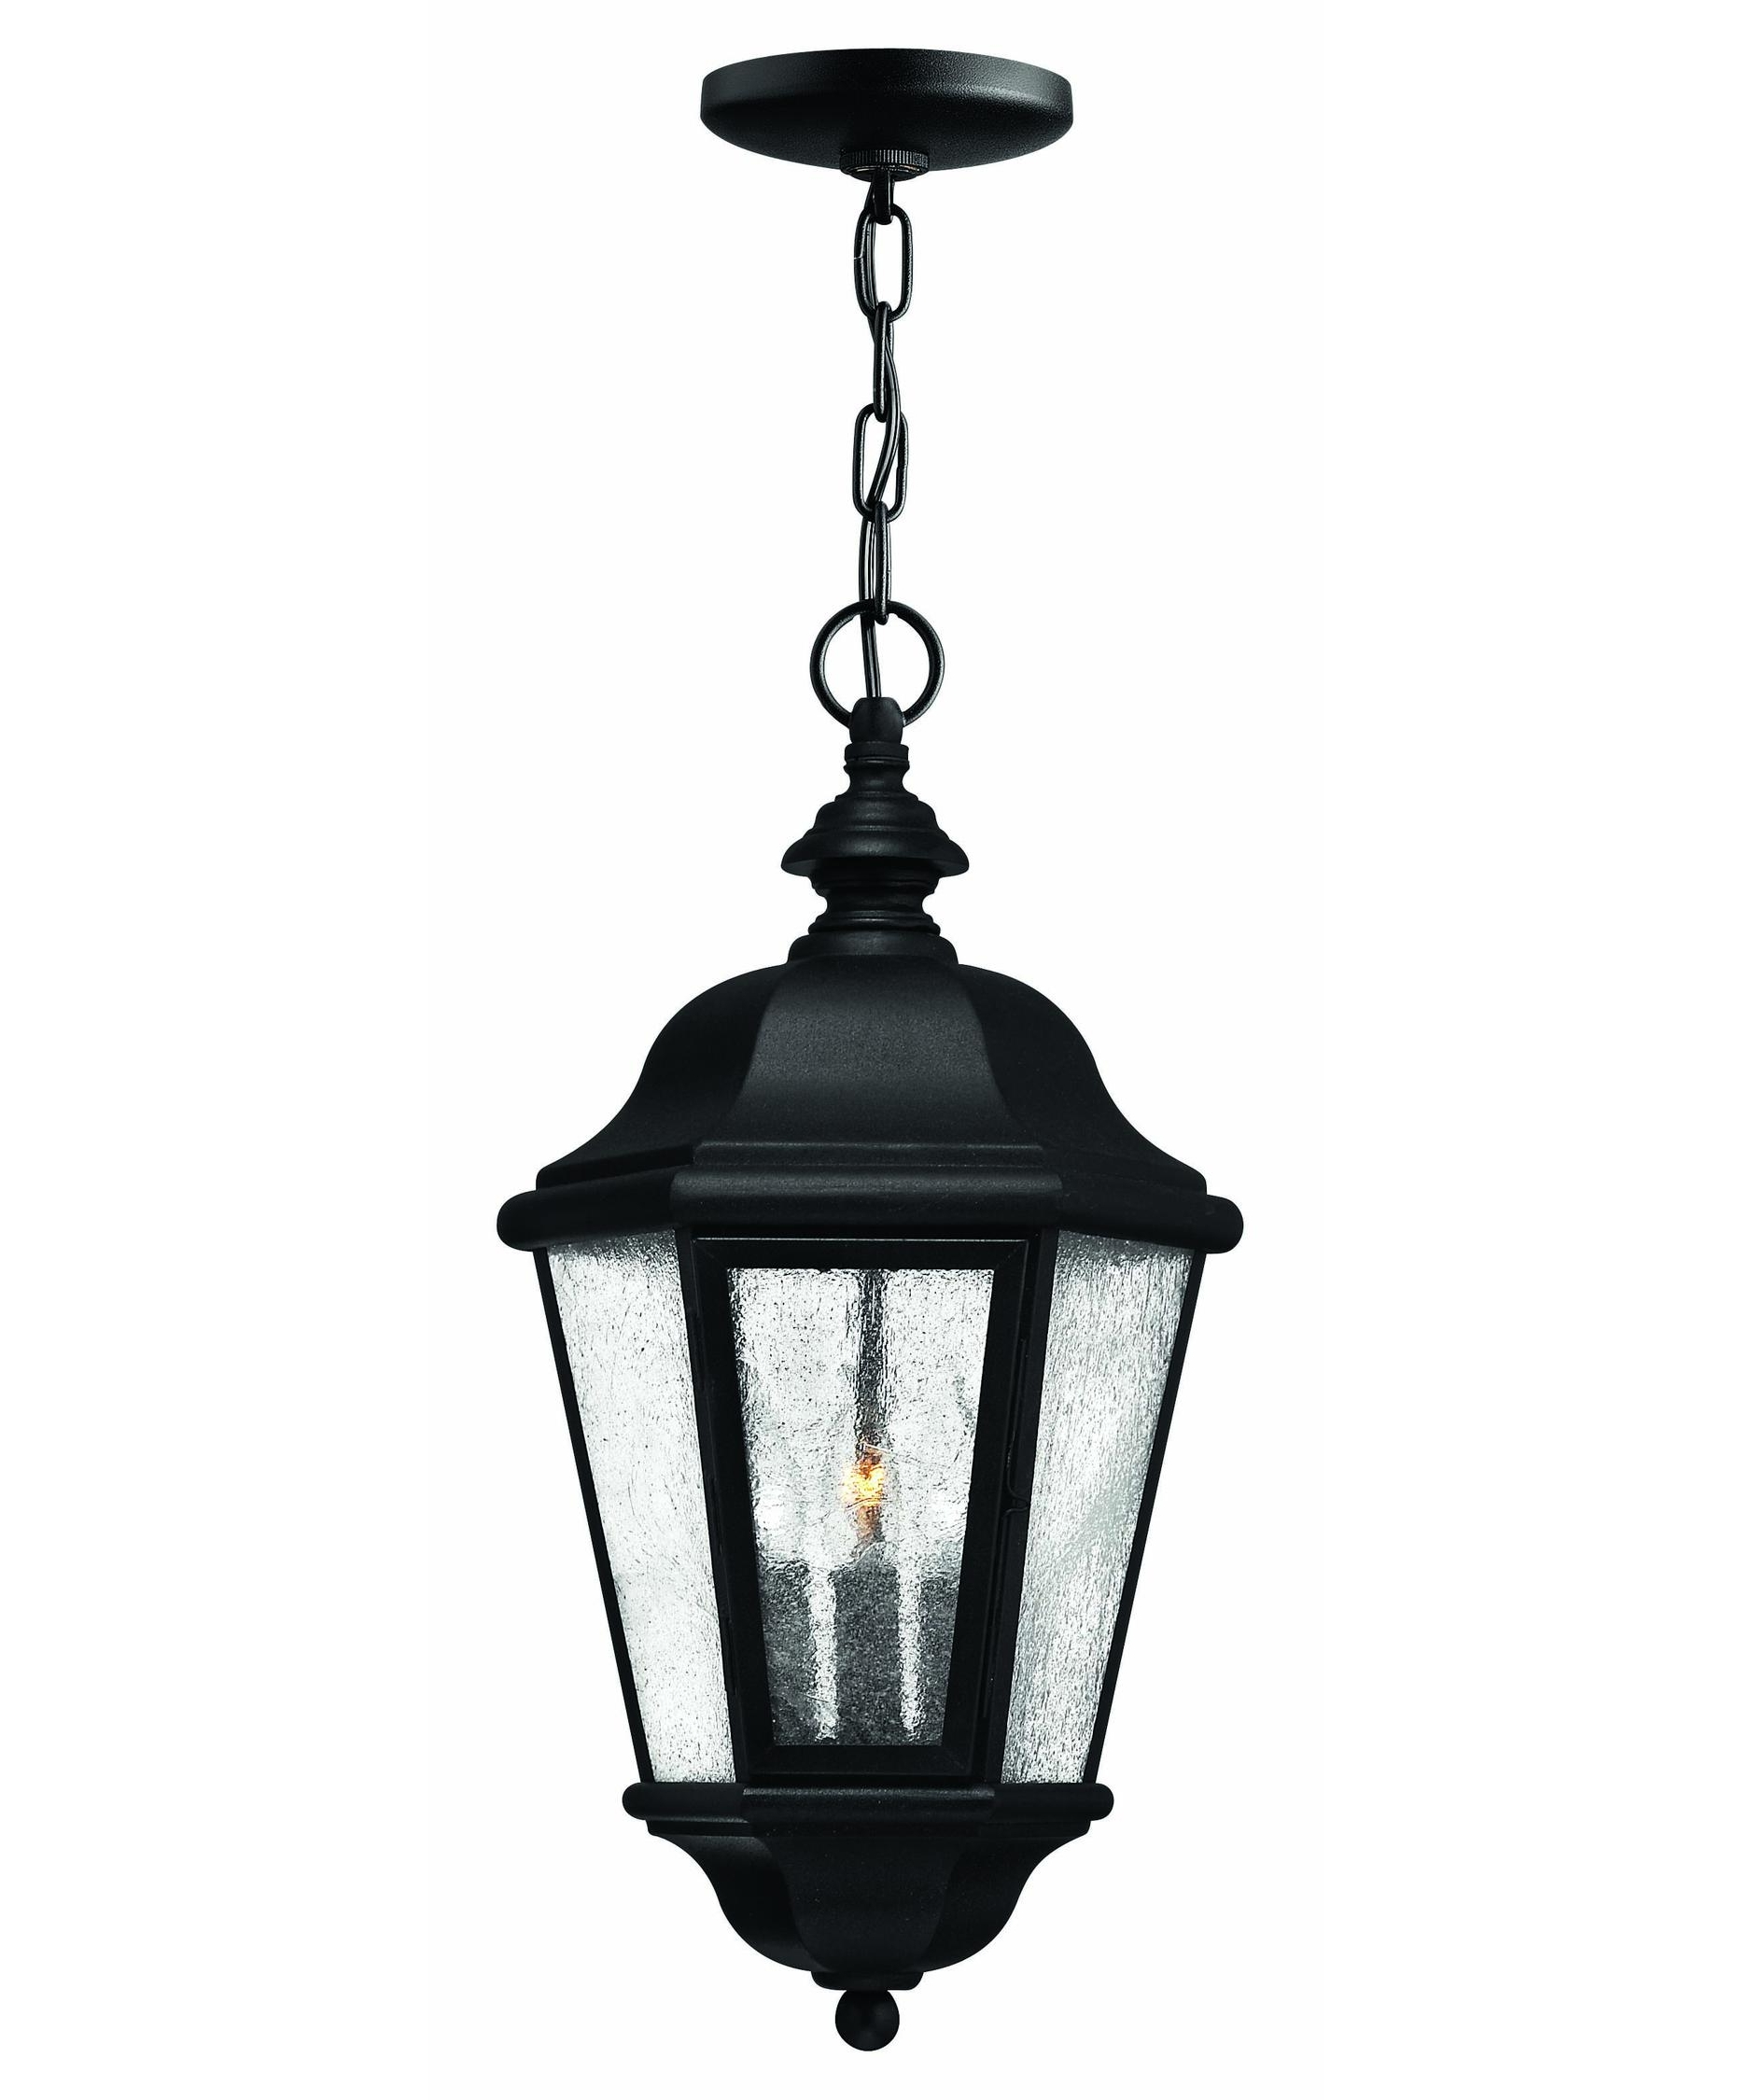 Hinkley Lighting 1672 Edgewater 10 Inch Wide 3 Light Outdoor Hanging Regarding Newest White Outdoor Hanging Lanterns (View 15 of 20)